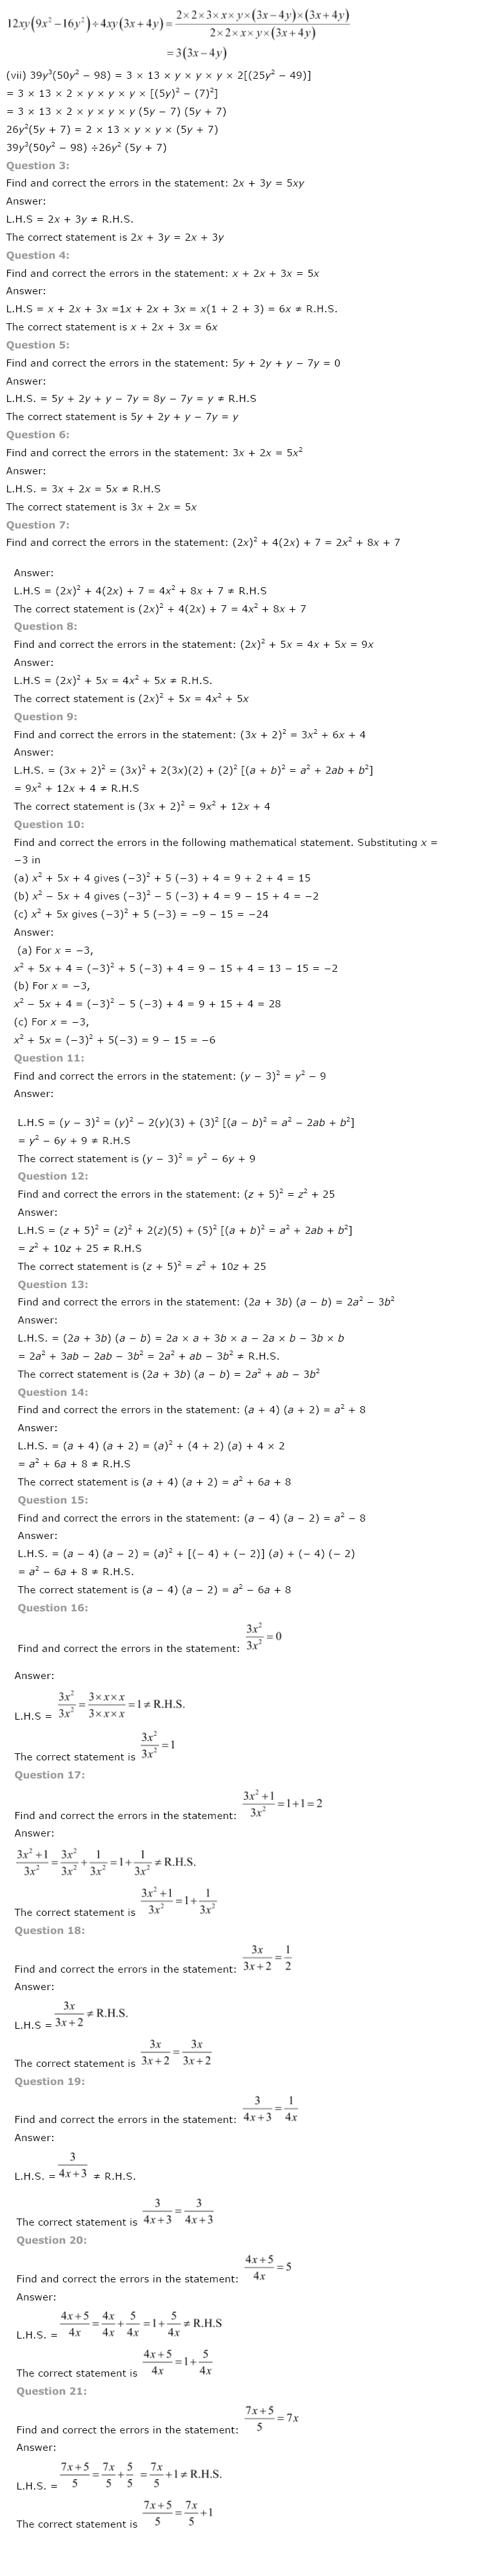 NCERT Solutions For Class 8 Maths Ch 14 Factorization PDF Download